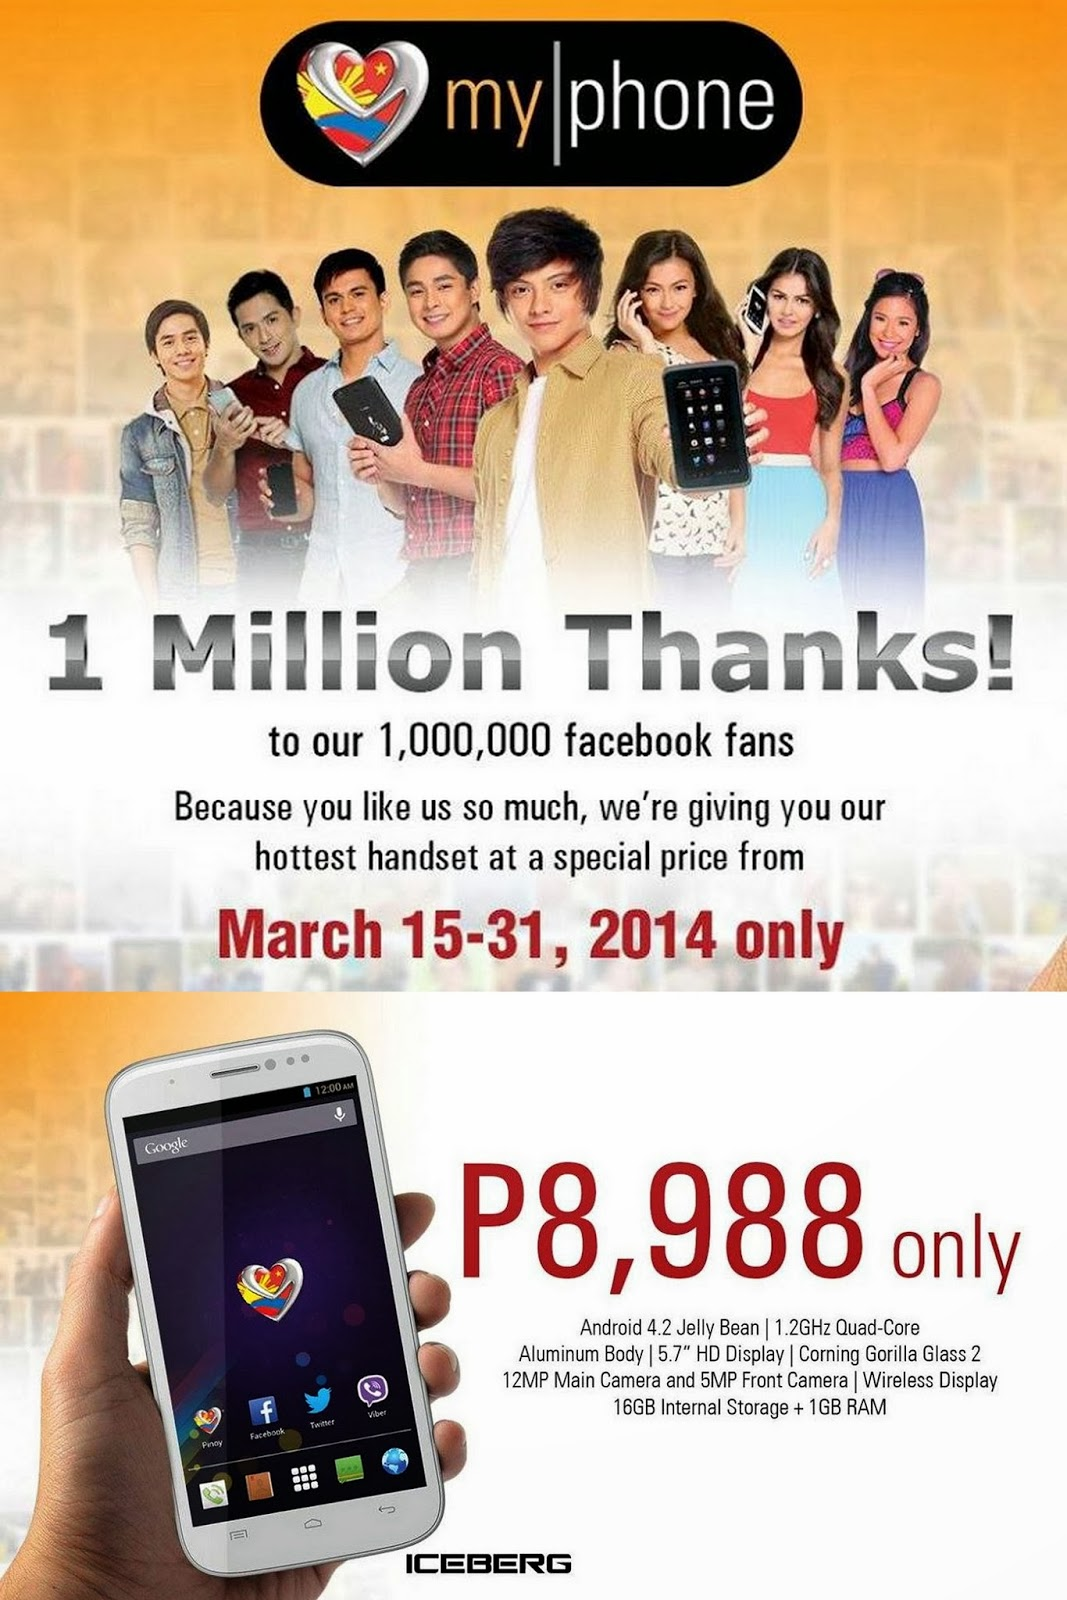 Promo alert Get a MyPhone Iceberg for only P8988